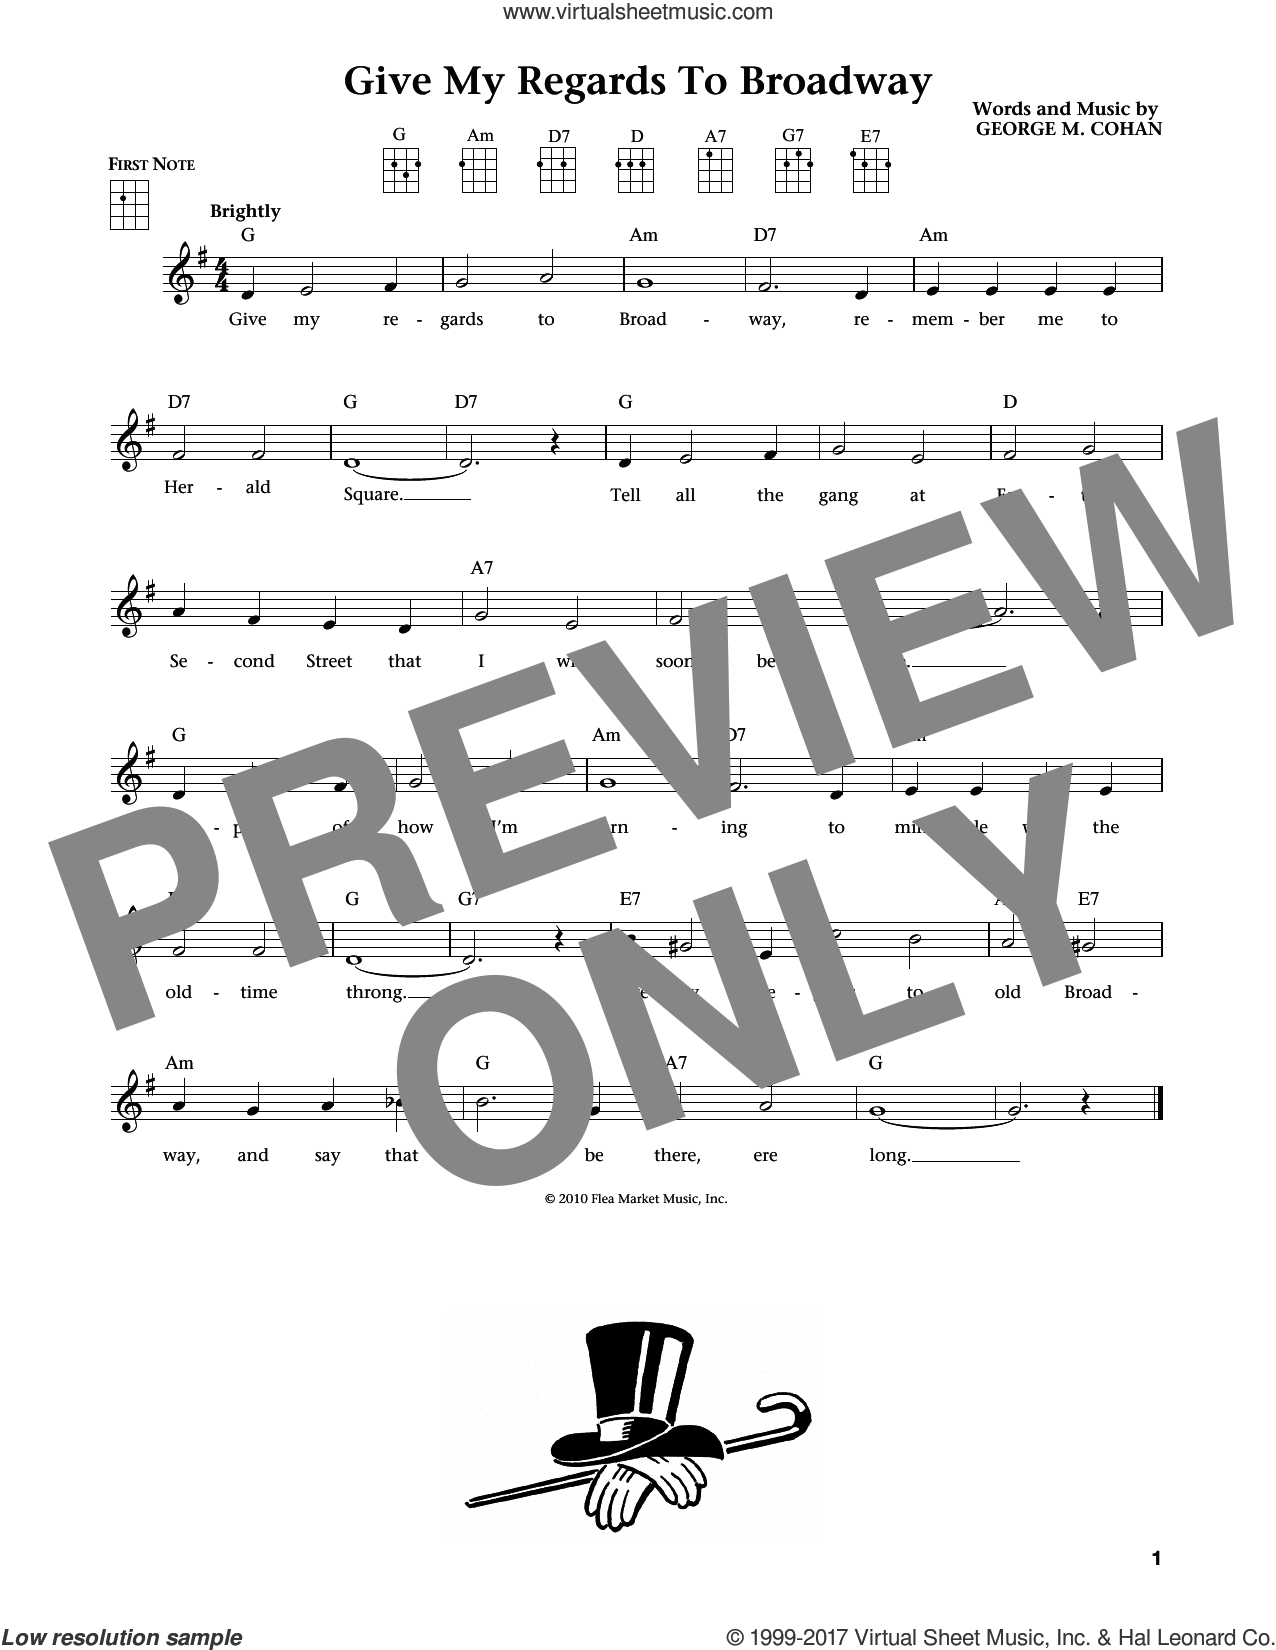 Give My Regards To Broadway (from The Daily Ukulele) (arr. Liz and Jim Beloff) sheet music for ukulele by George M. Cohan, Jim Beloff, Liz Beloff and George Cohan, intermediate skill level